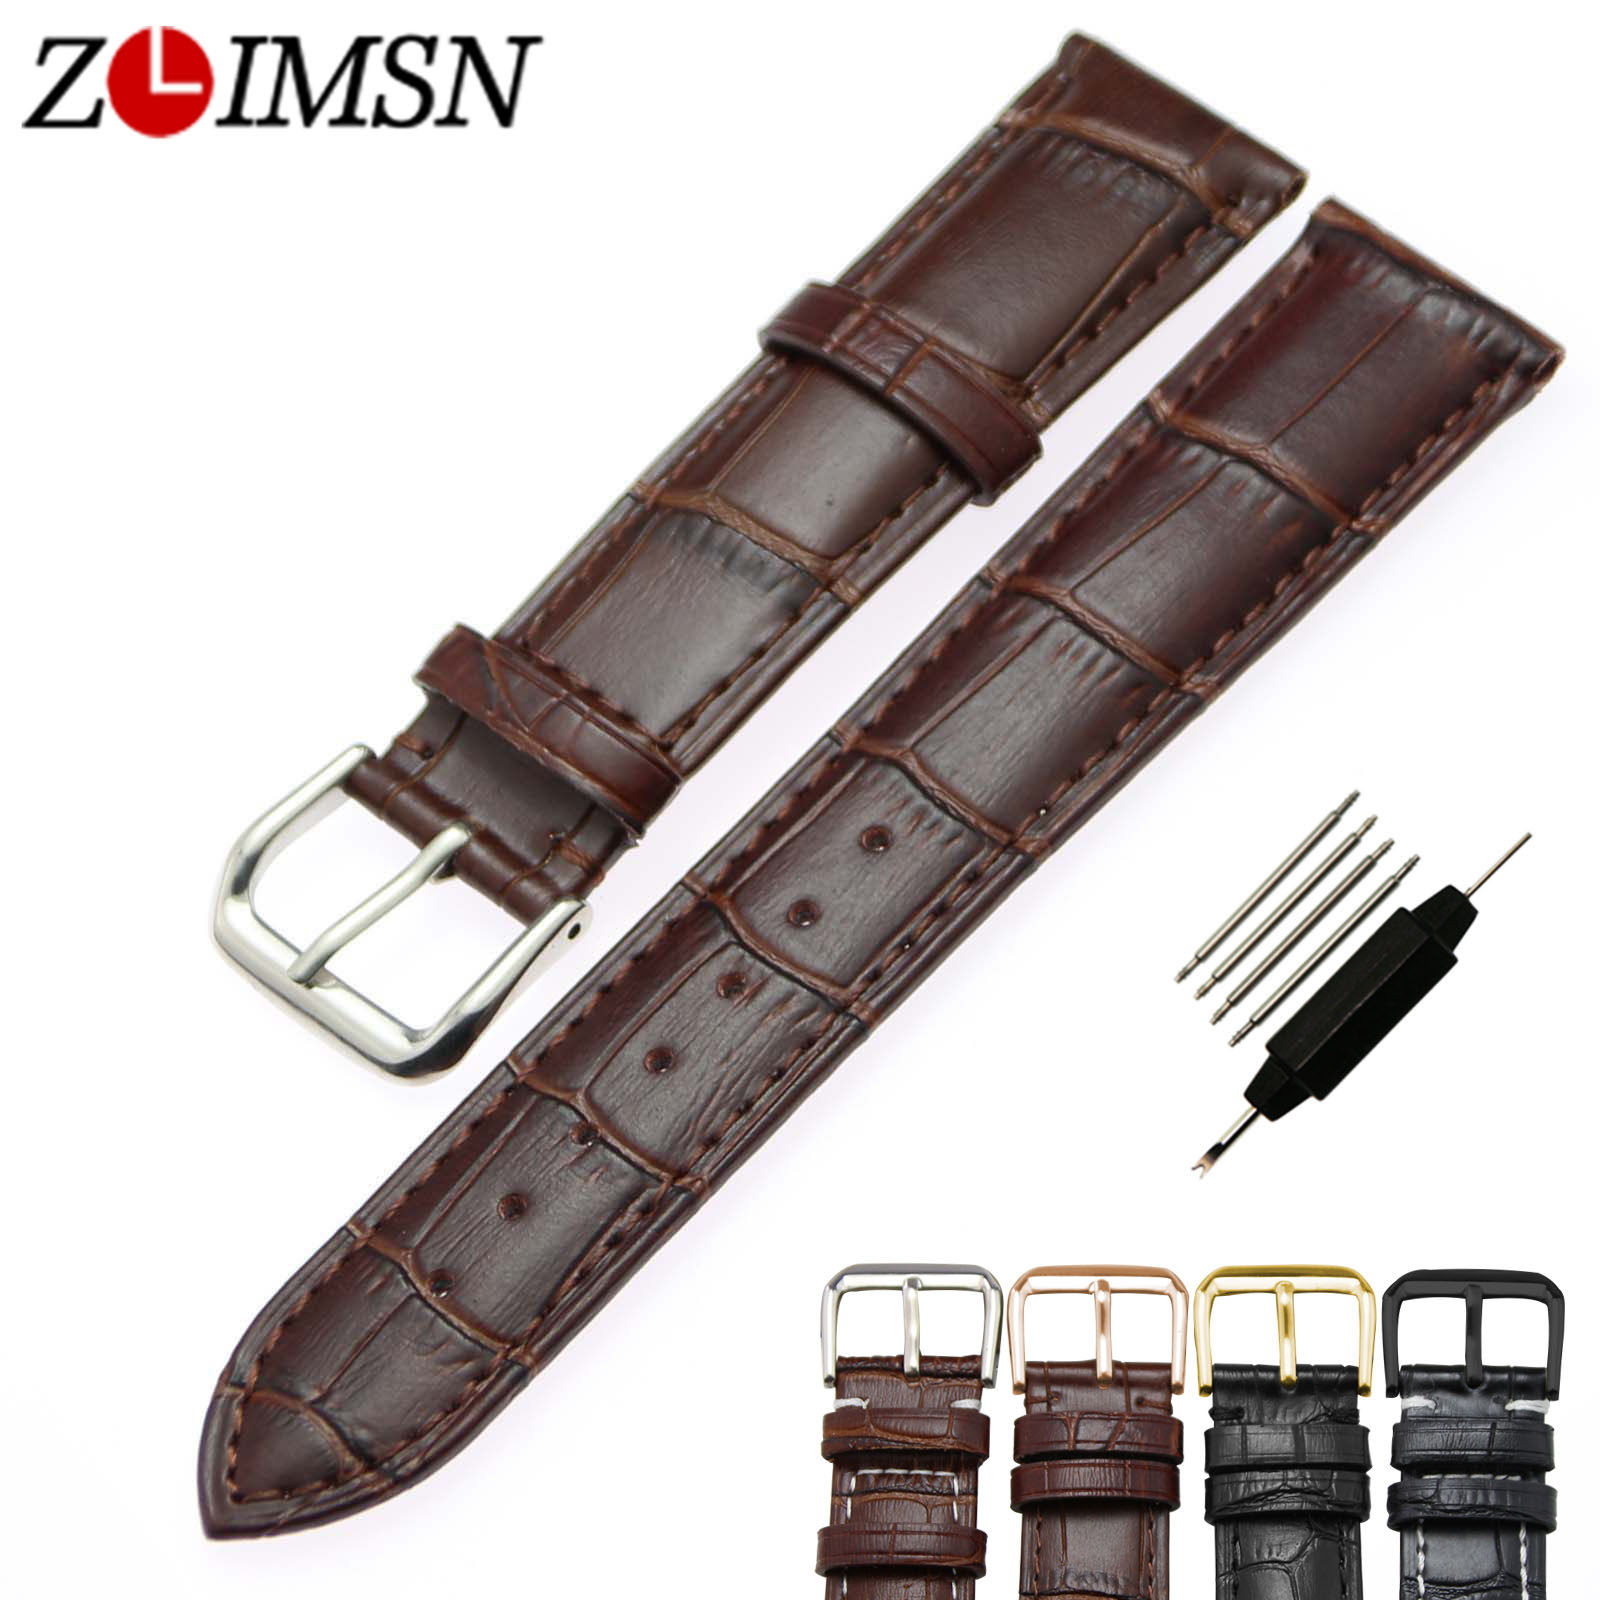 ZLIMSN Genuine Leather Watch Strap 18 19 20 21 22 23 24mm Black Brown Watchbands Stainless Steel Buckle Rose Silver Polished zlimsn high quality thick genuine leather watchbands 20 22 24 26mm brown watch strap 316l brushed silver stainless steel buckle